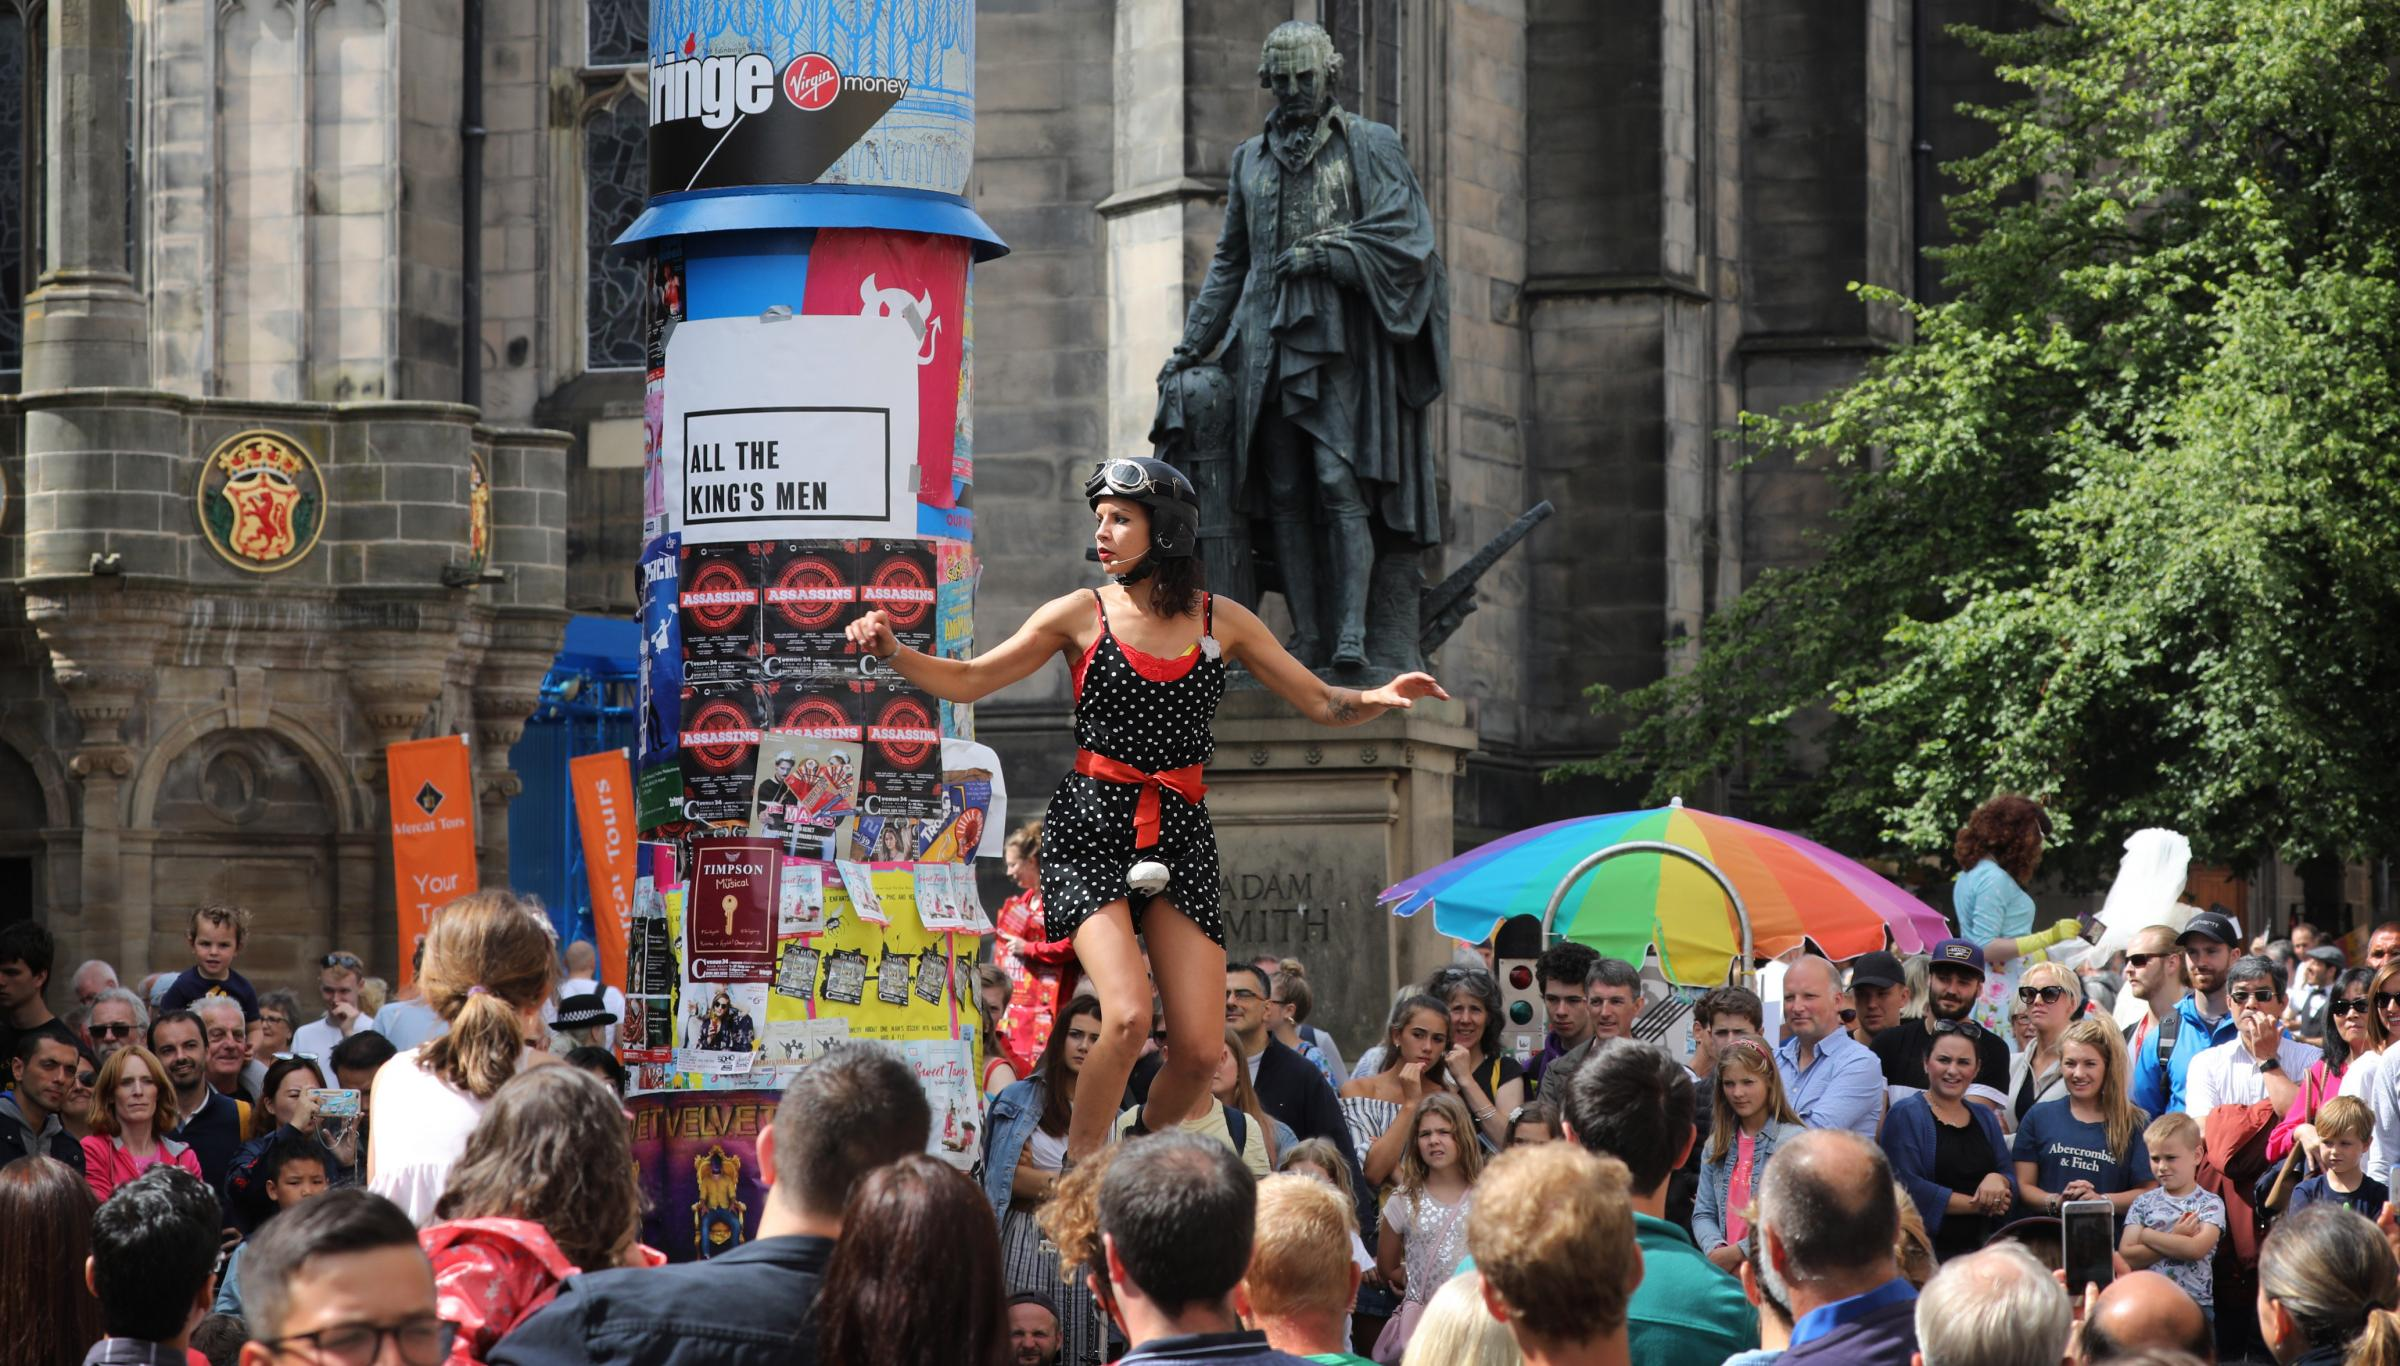 The Edinburgh Festival showcases the value of investing in the artistic community. Photograph: Stewart Attwood